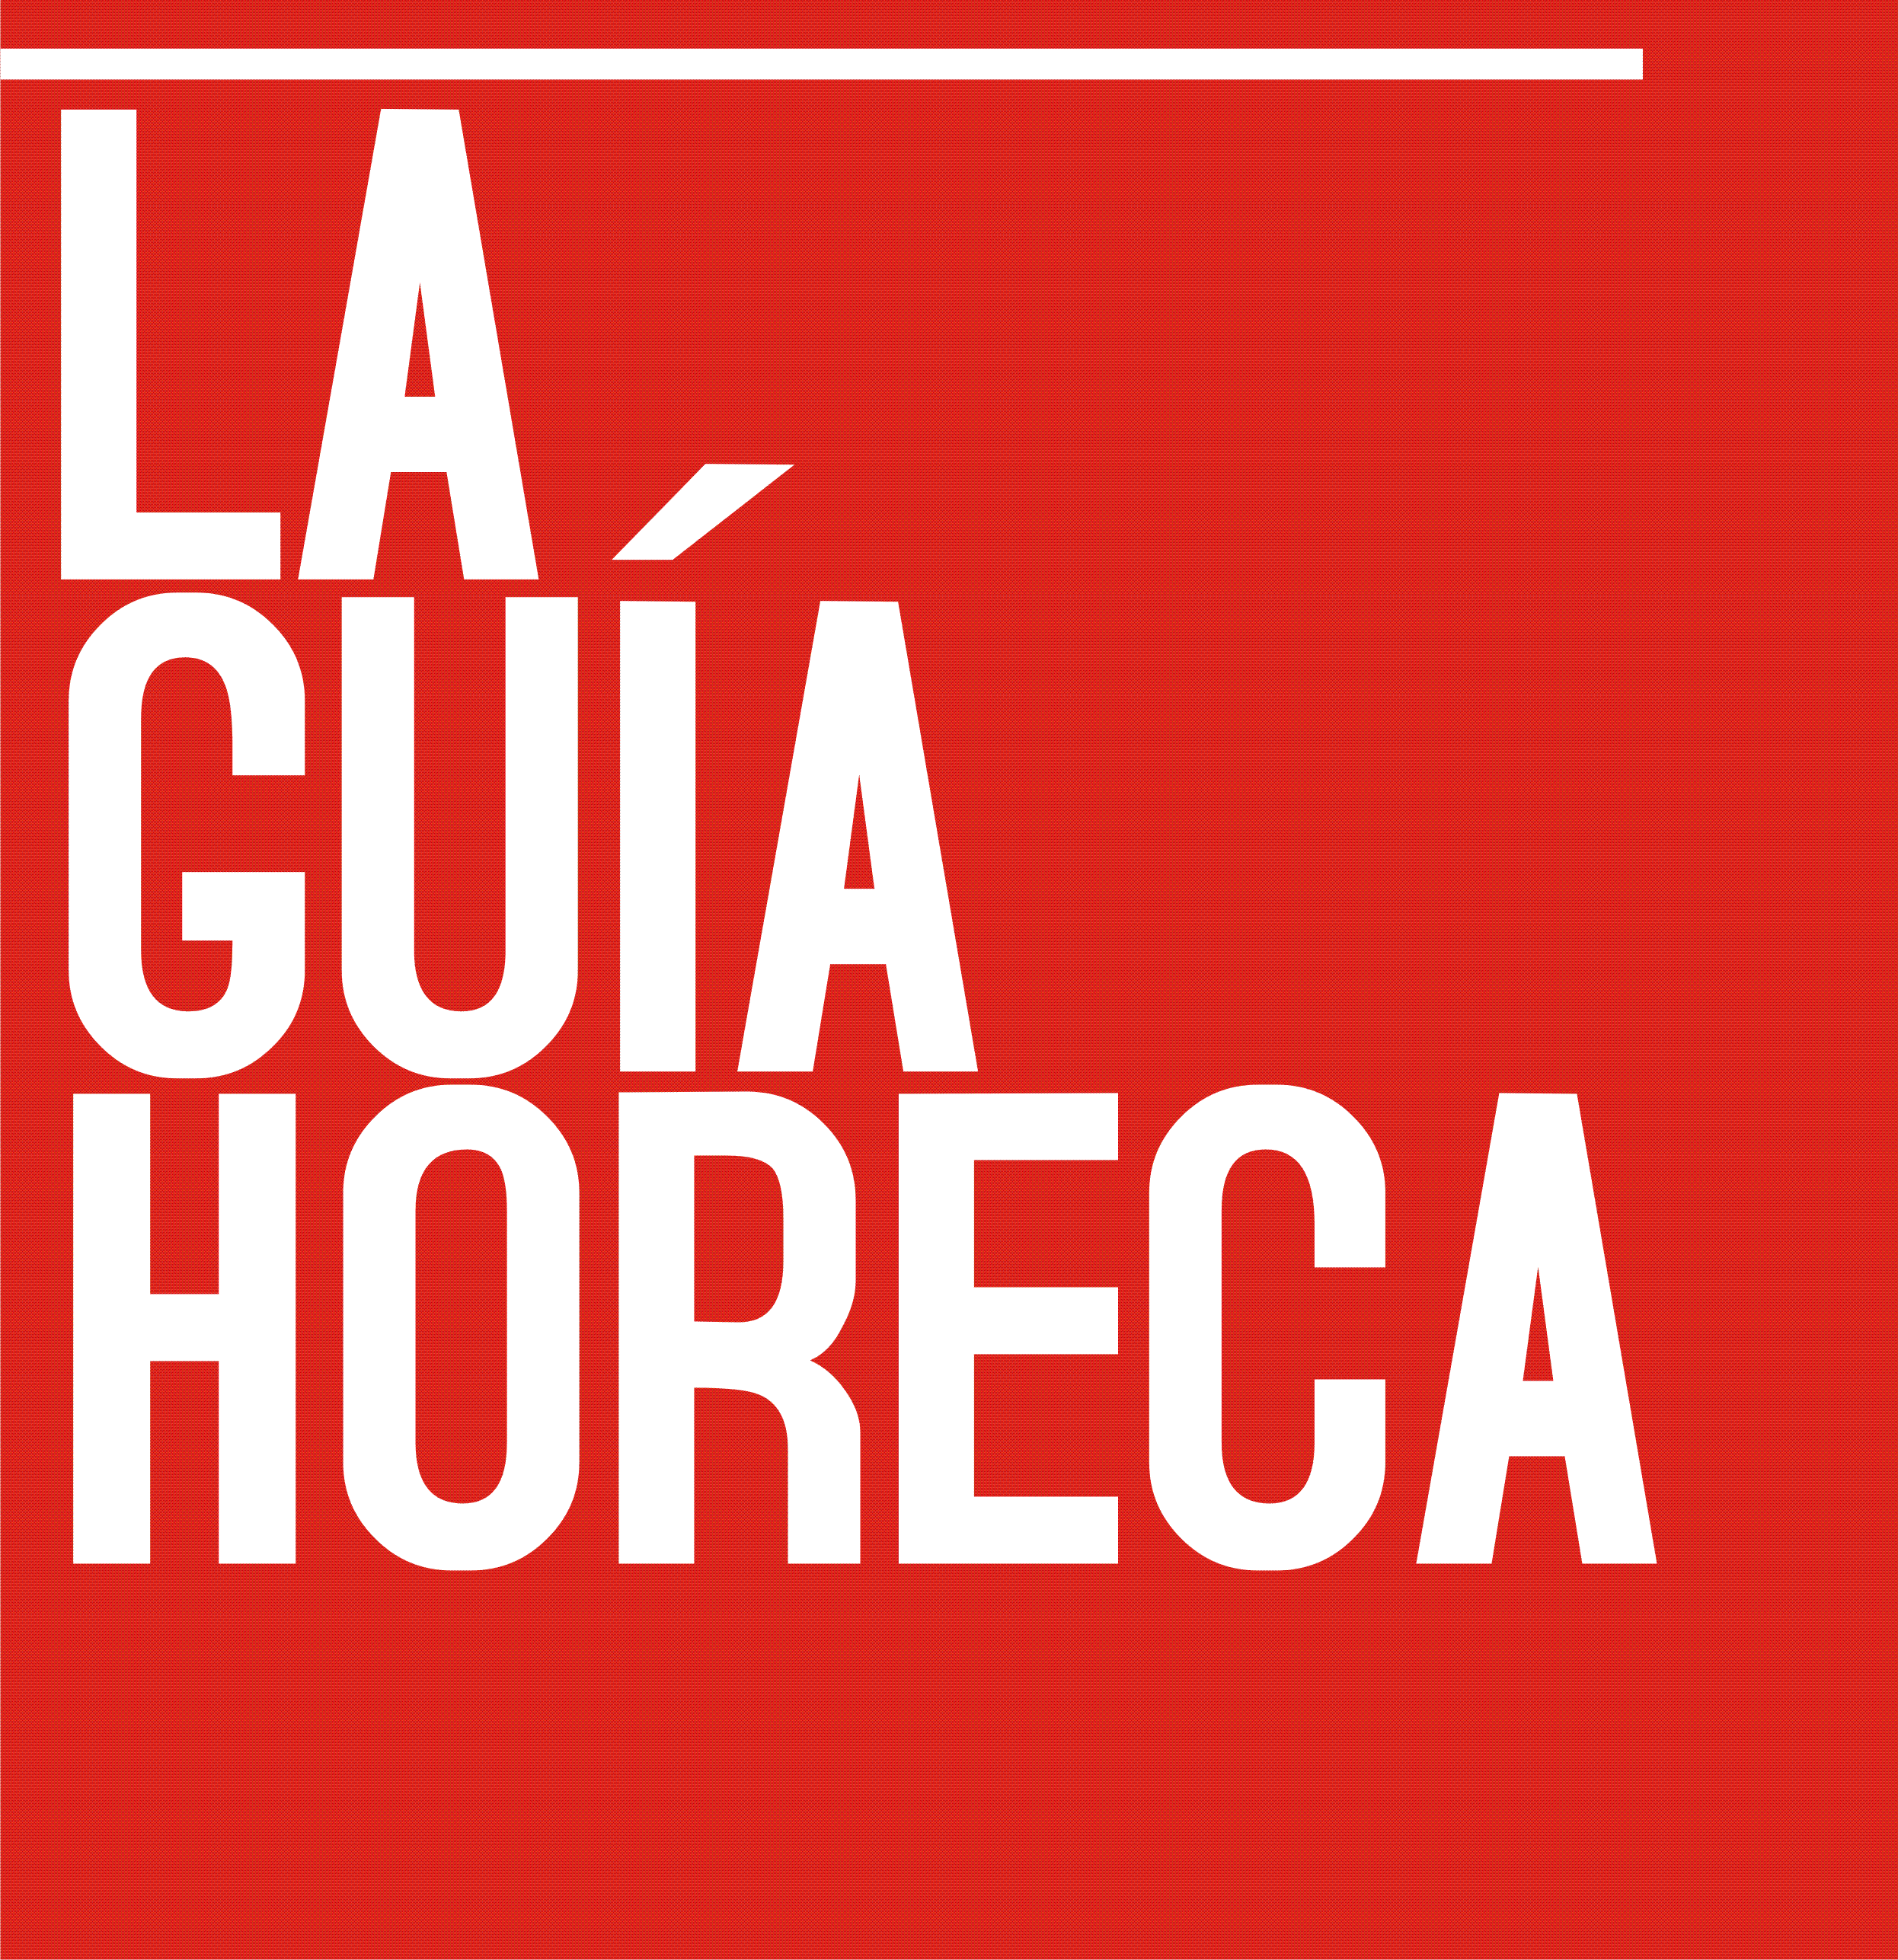 https://laguiahoreca.com/blog/